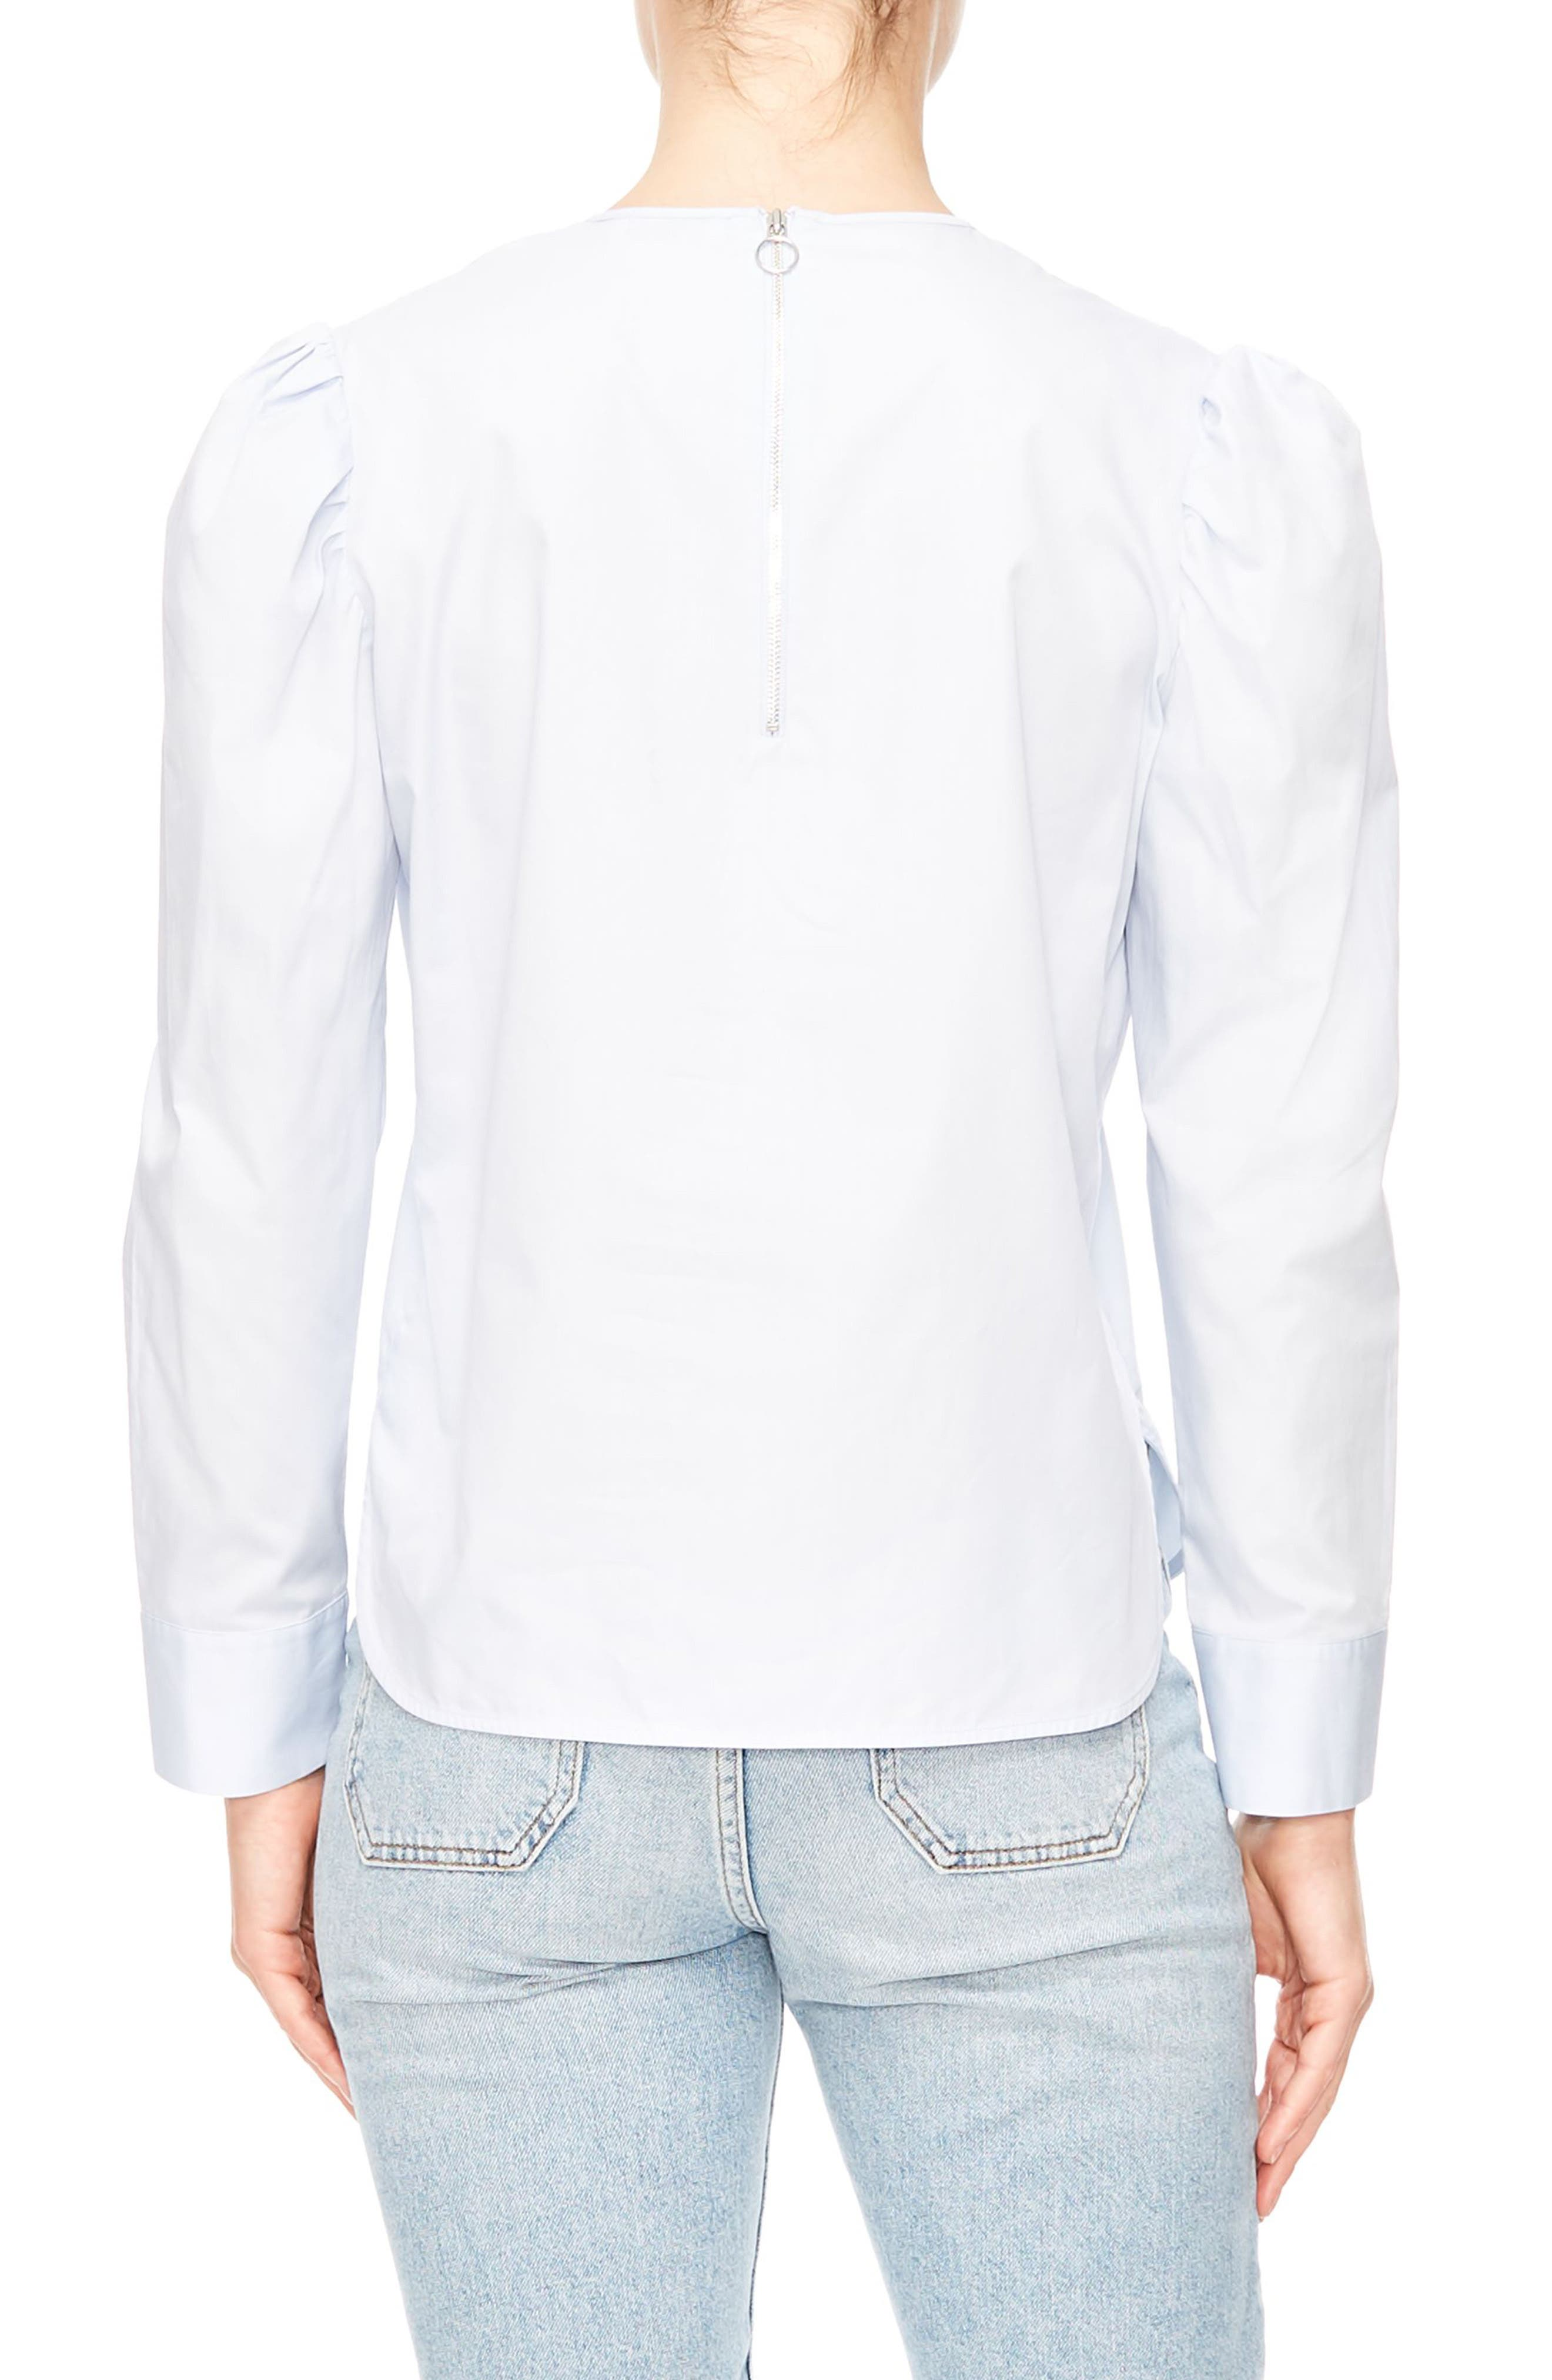 Embroidered Cutout Blouse,                             Alternate thumbnail 2, color,                             401